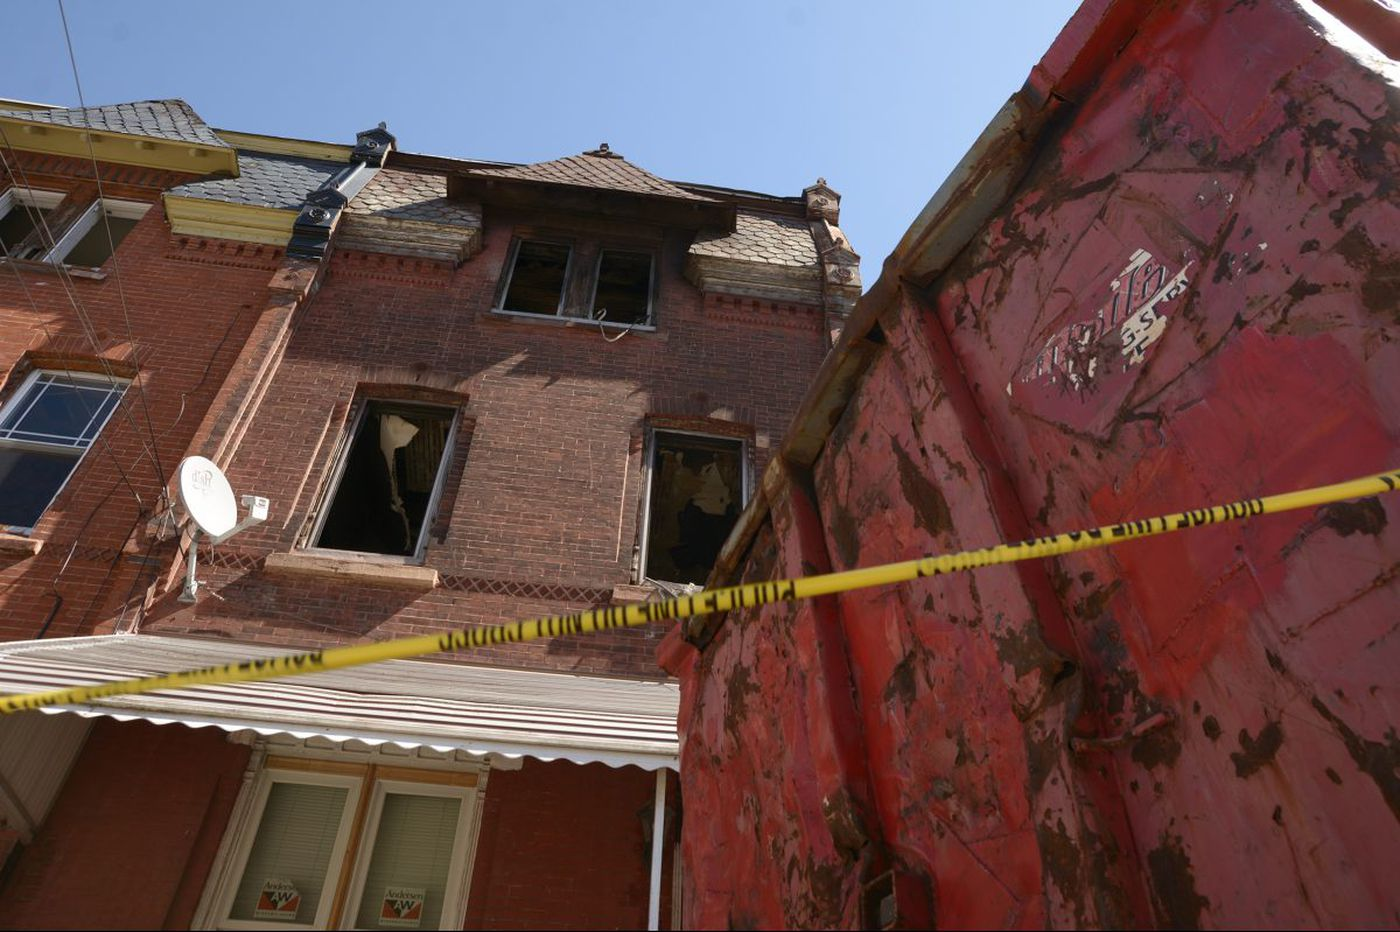 Years before fatal North Philly boarding house fire, landlord's legal troubles began piling up